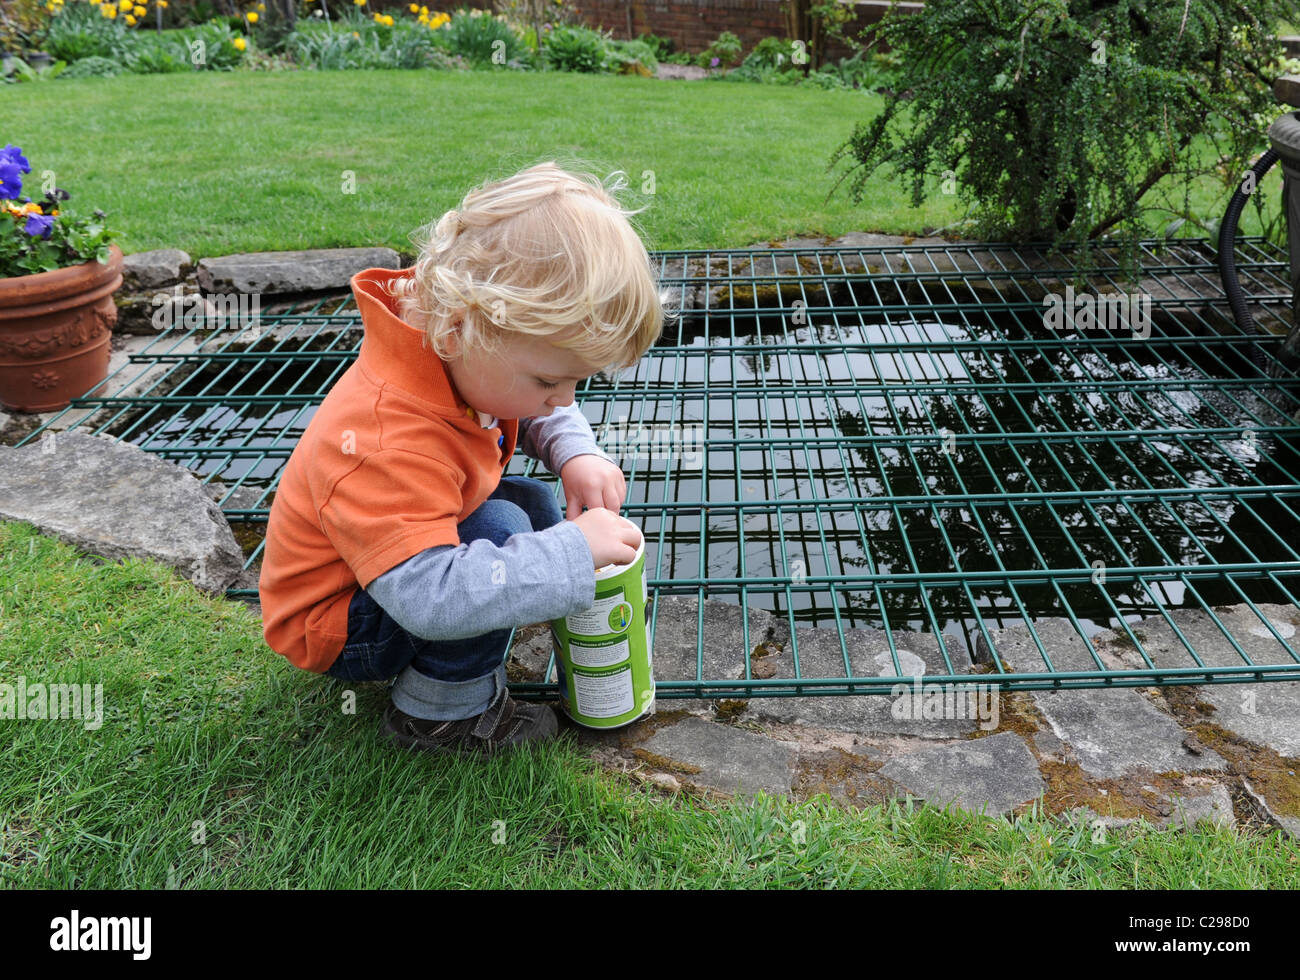 Child playing by garden pond with a safety guard stock for Garden pond guards